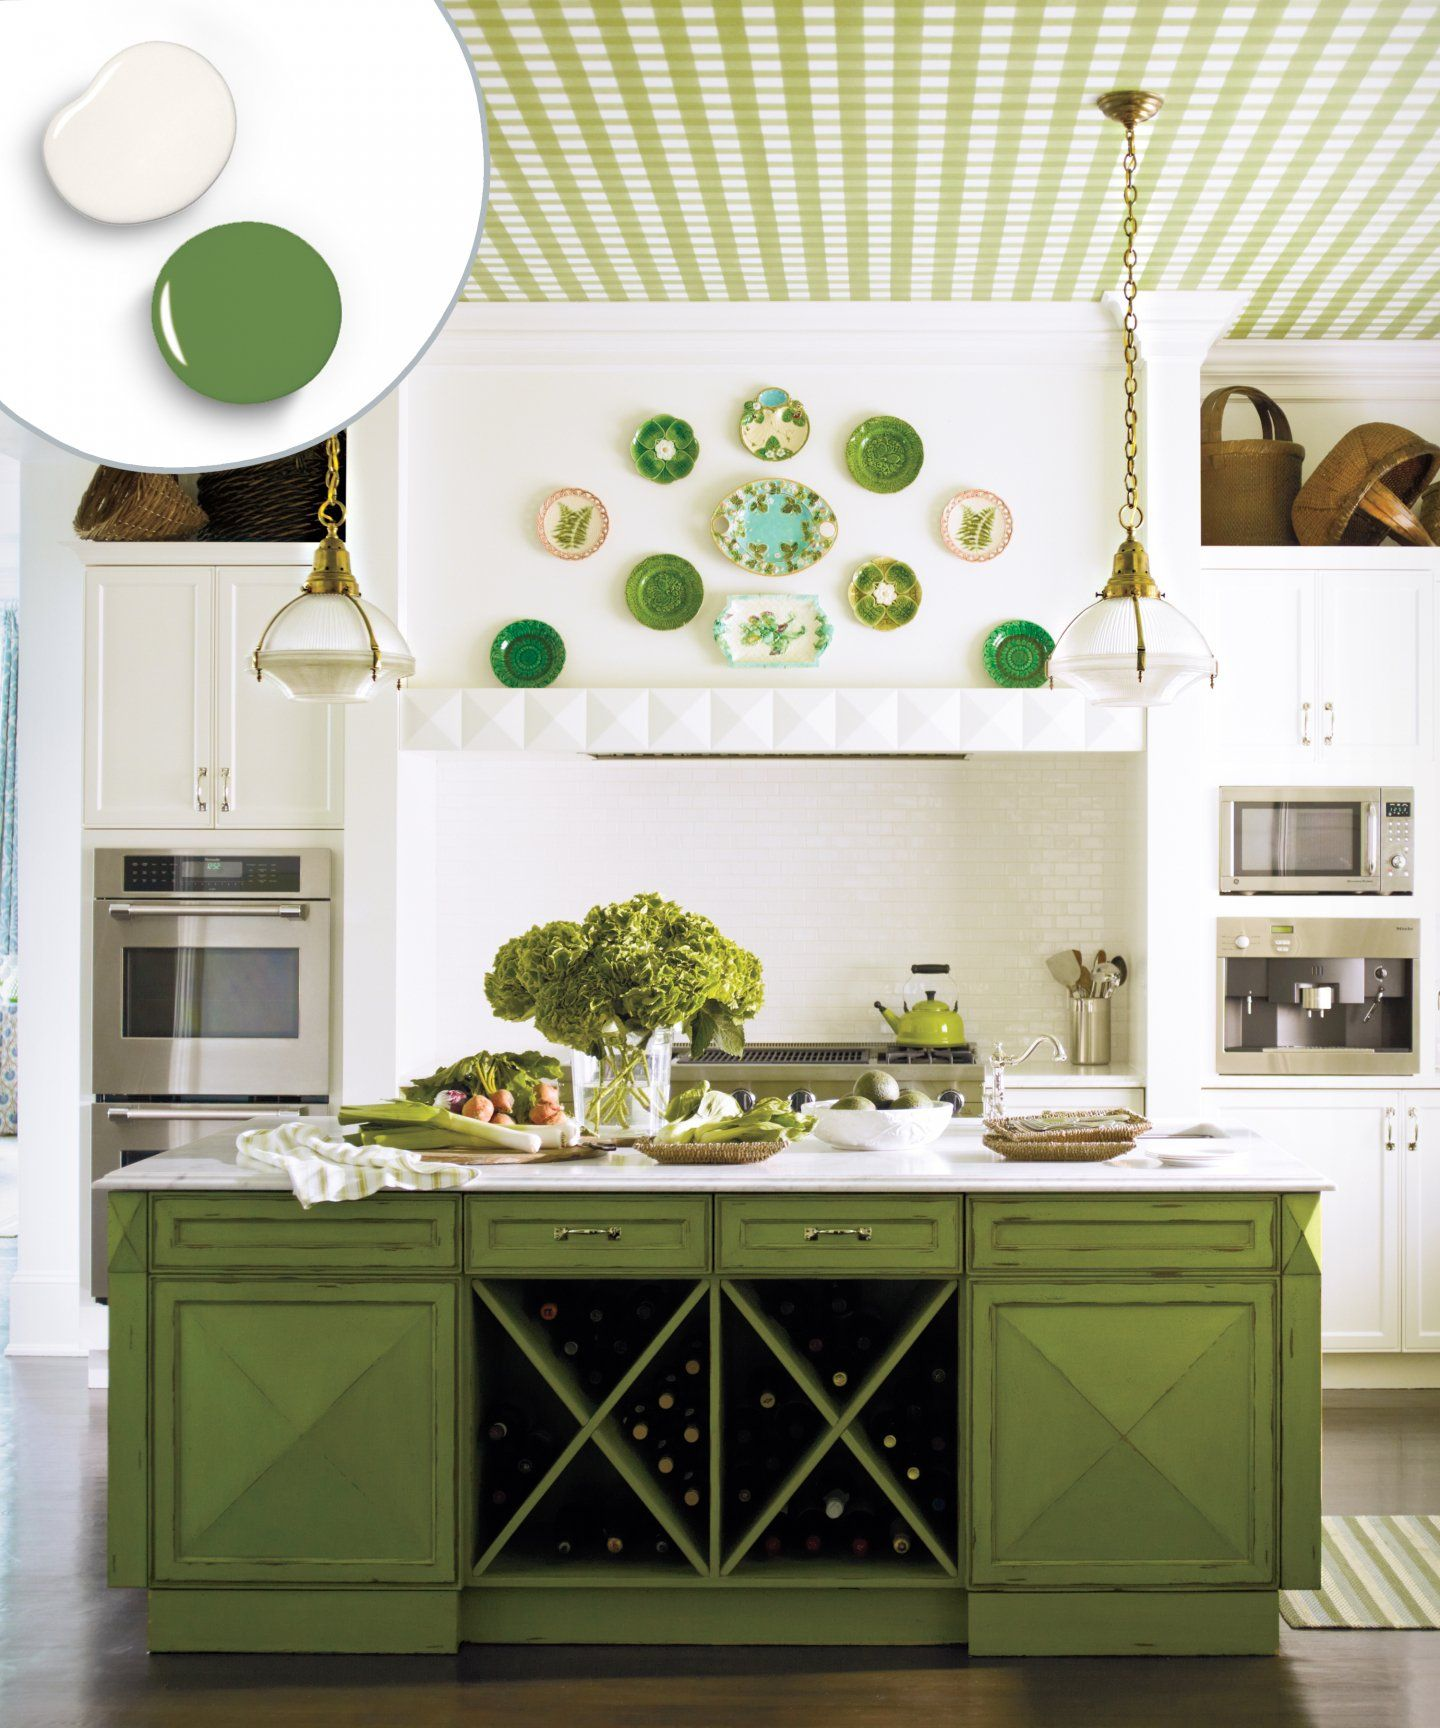 12 Kitchen Cabinet Color Combos That Really Cook Green Kitchen Cabinets Classic White Kitchen Kitchen Cabinet Colors